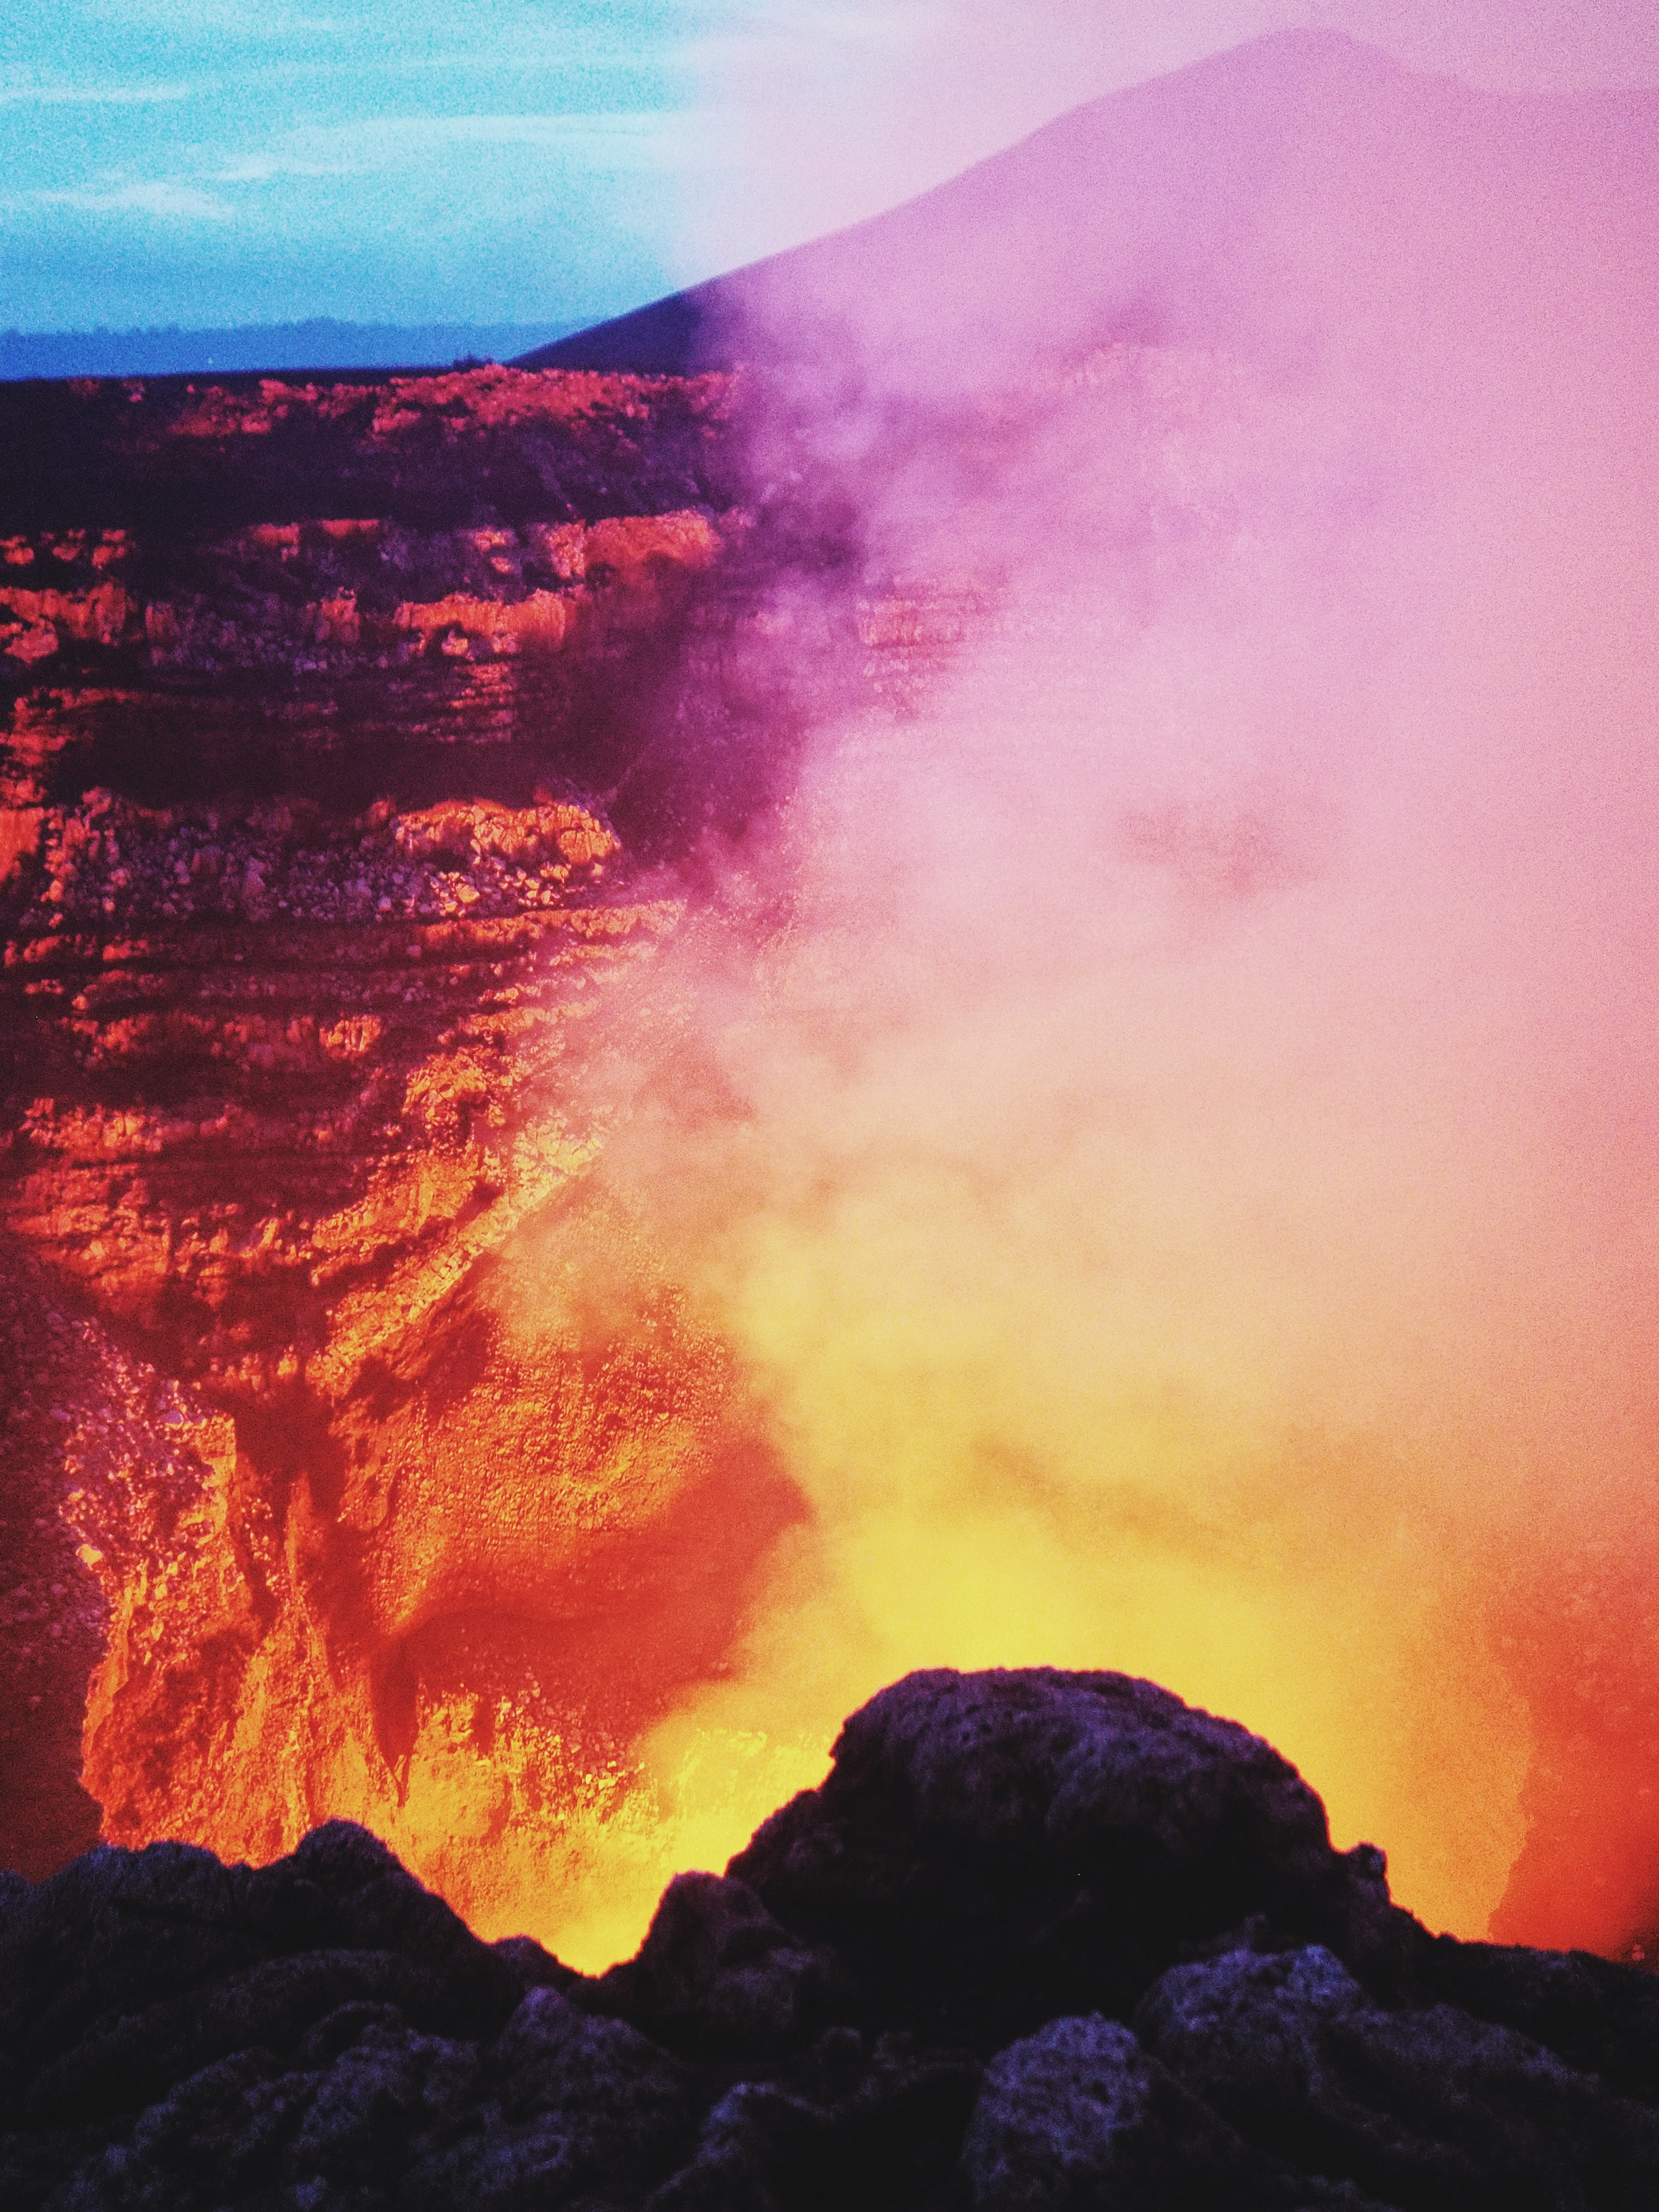 Extraordinary colors filled the sky above and around the volcano, then we peered down...